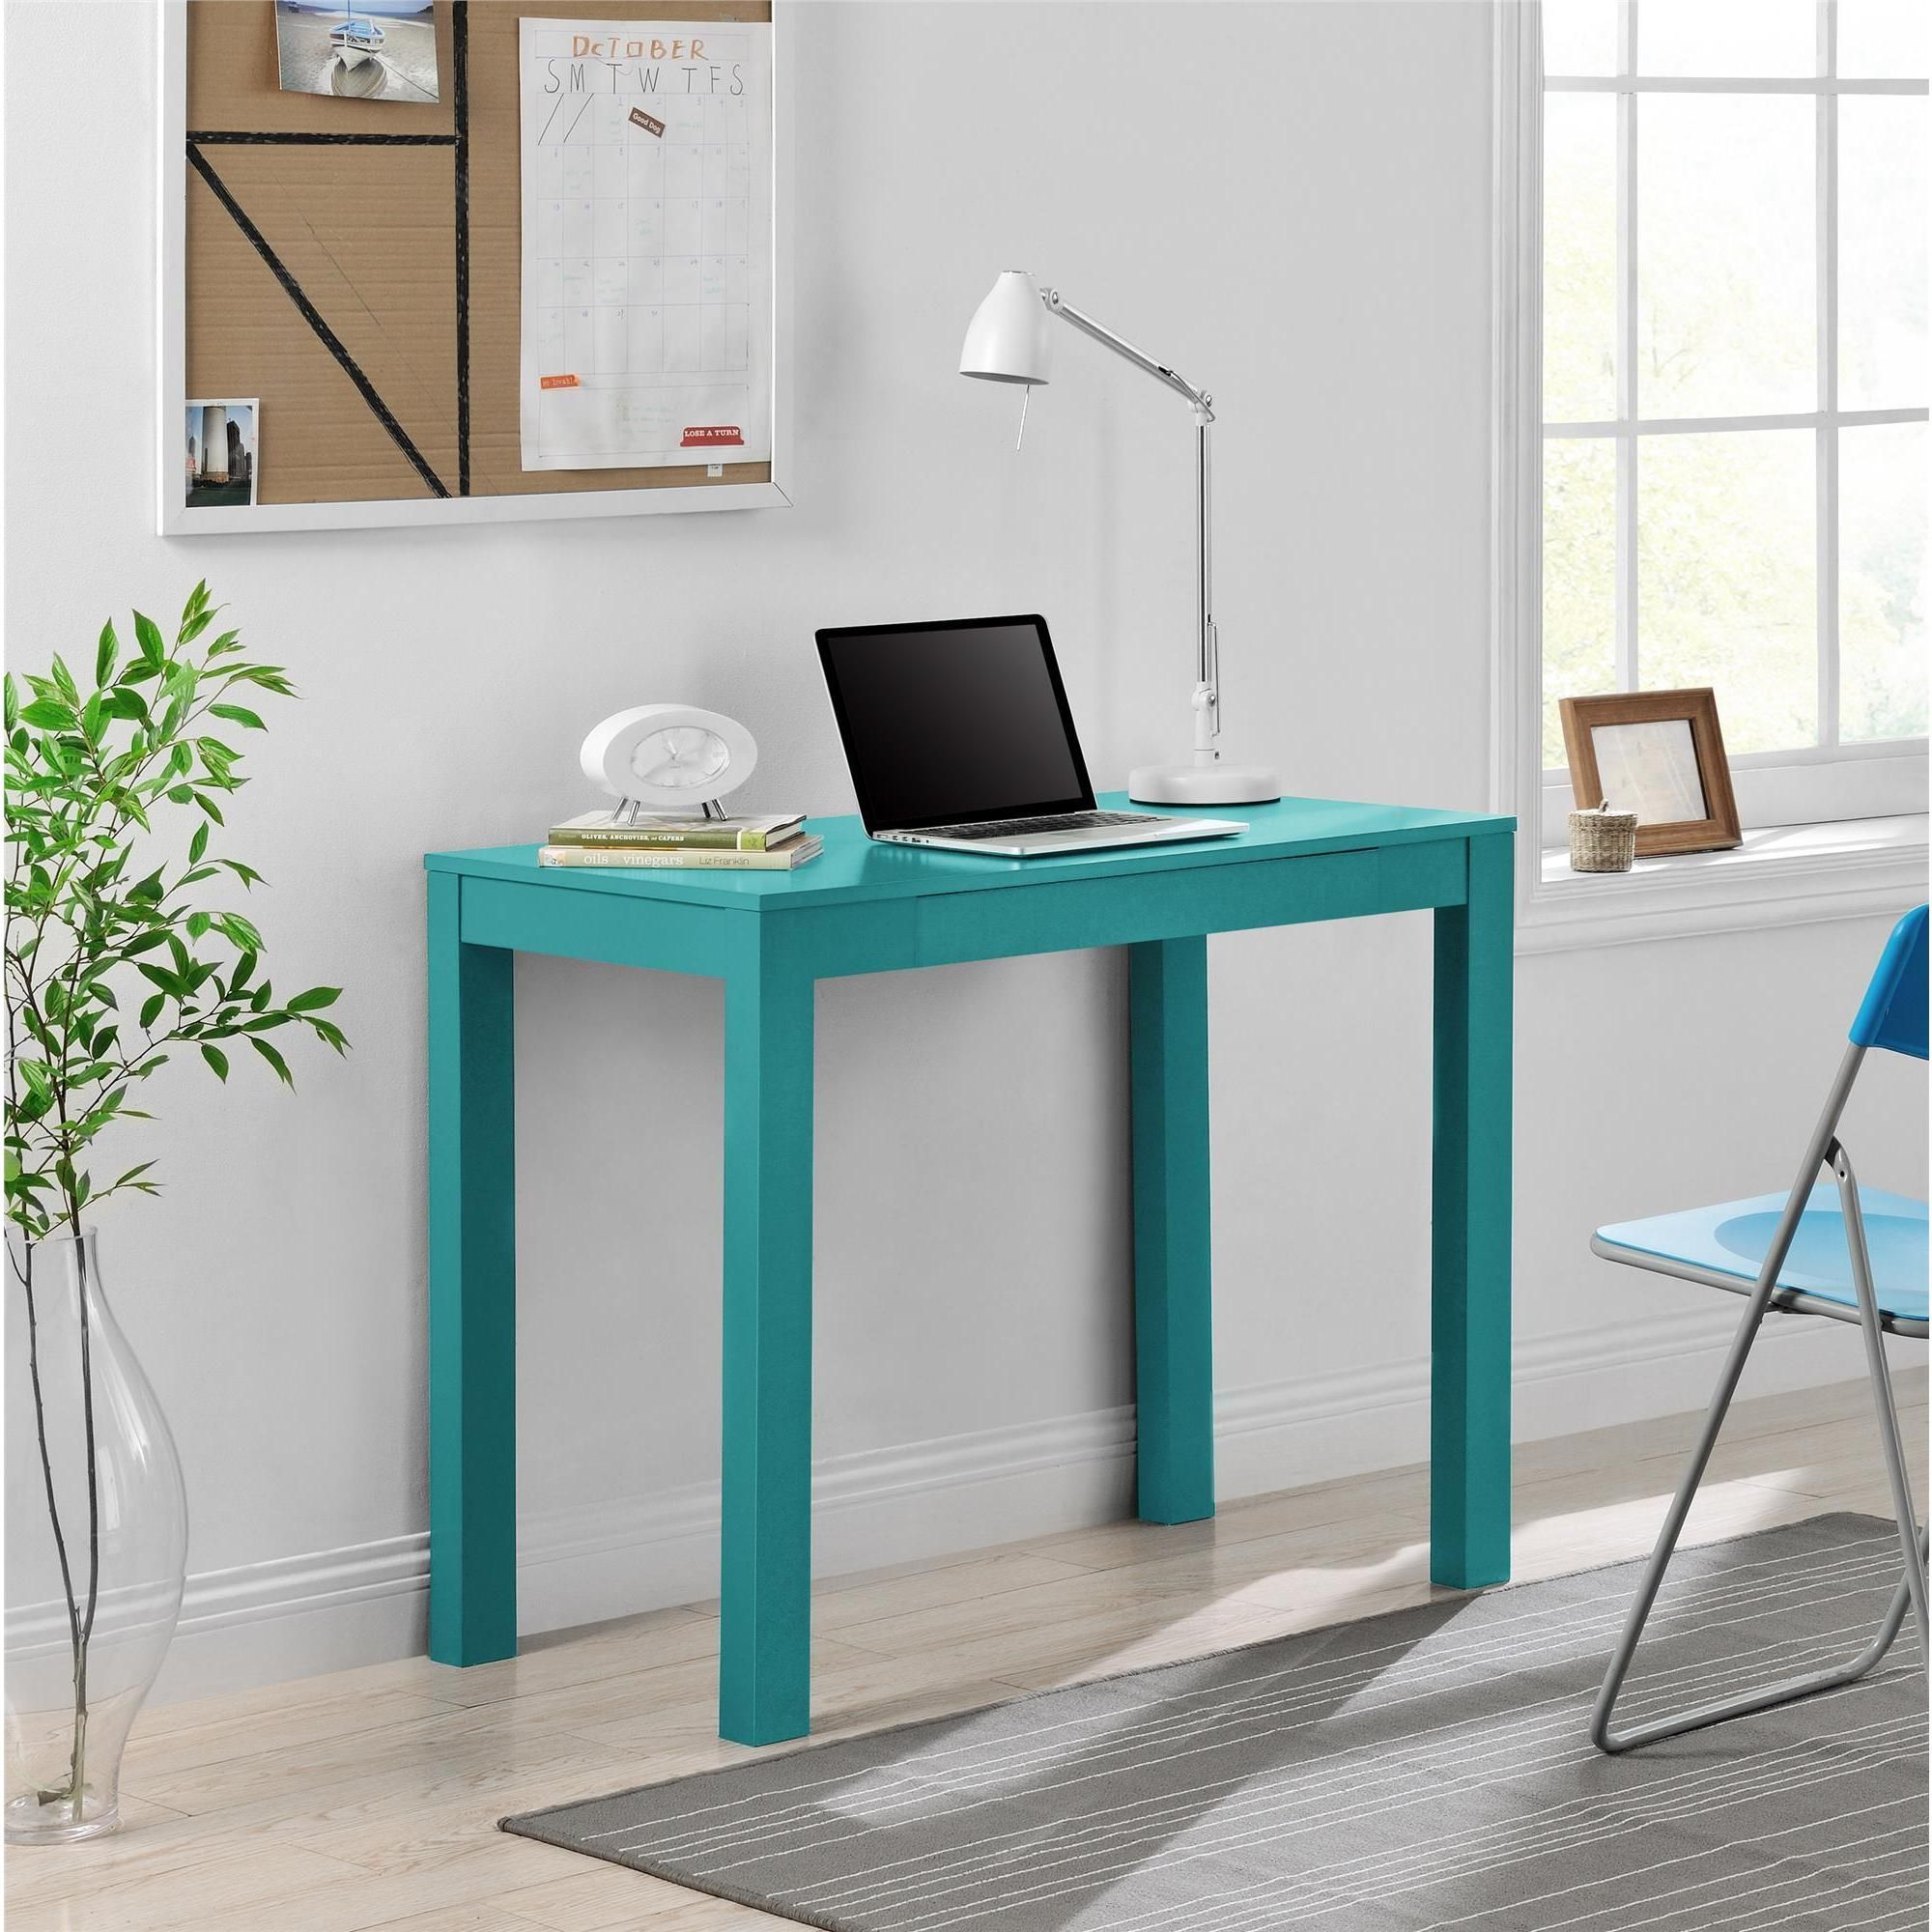 pdx reviews desk computer phaidra wrought furniture wayfair studio teal